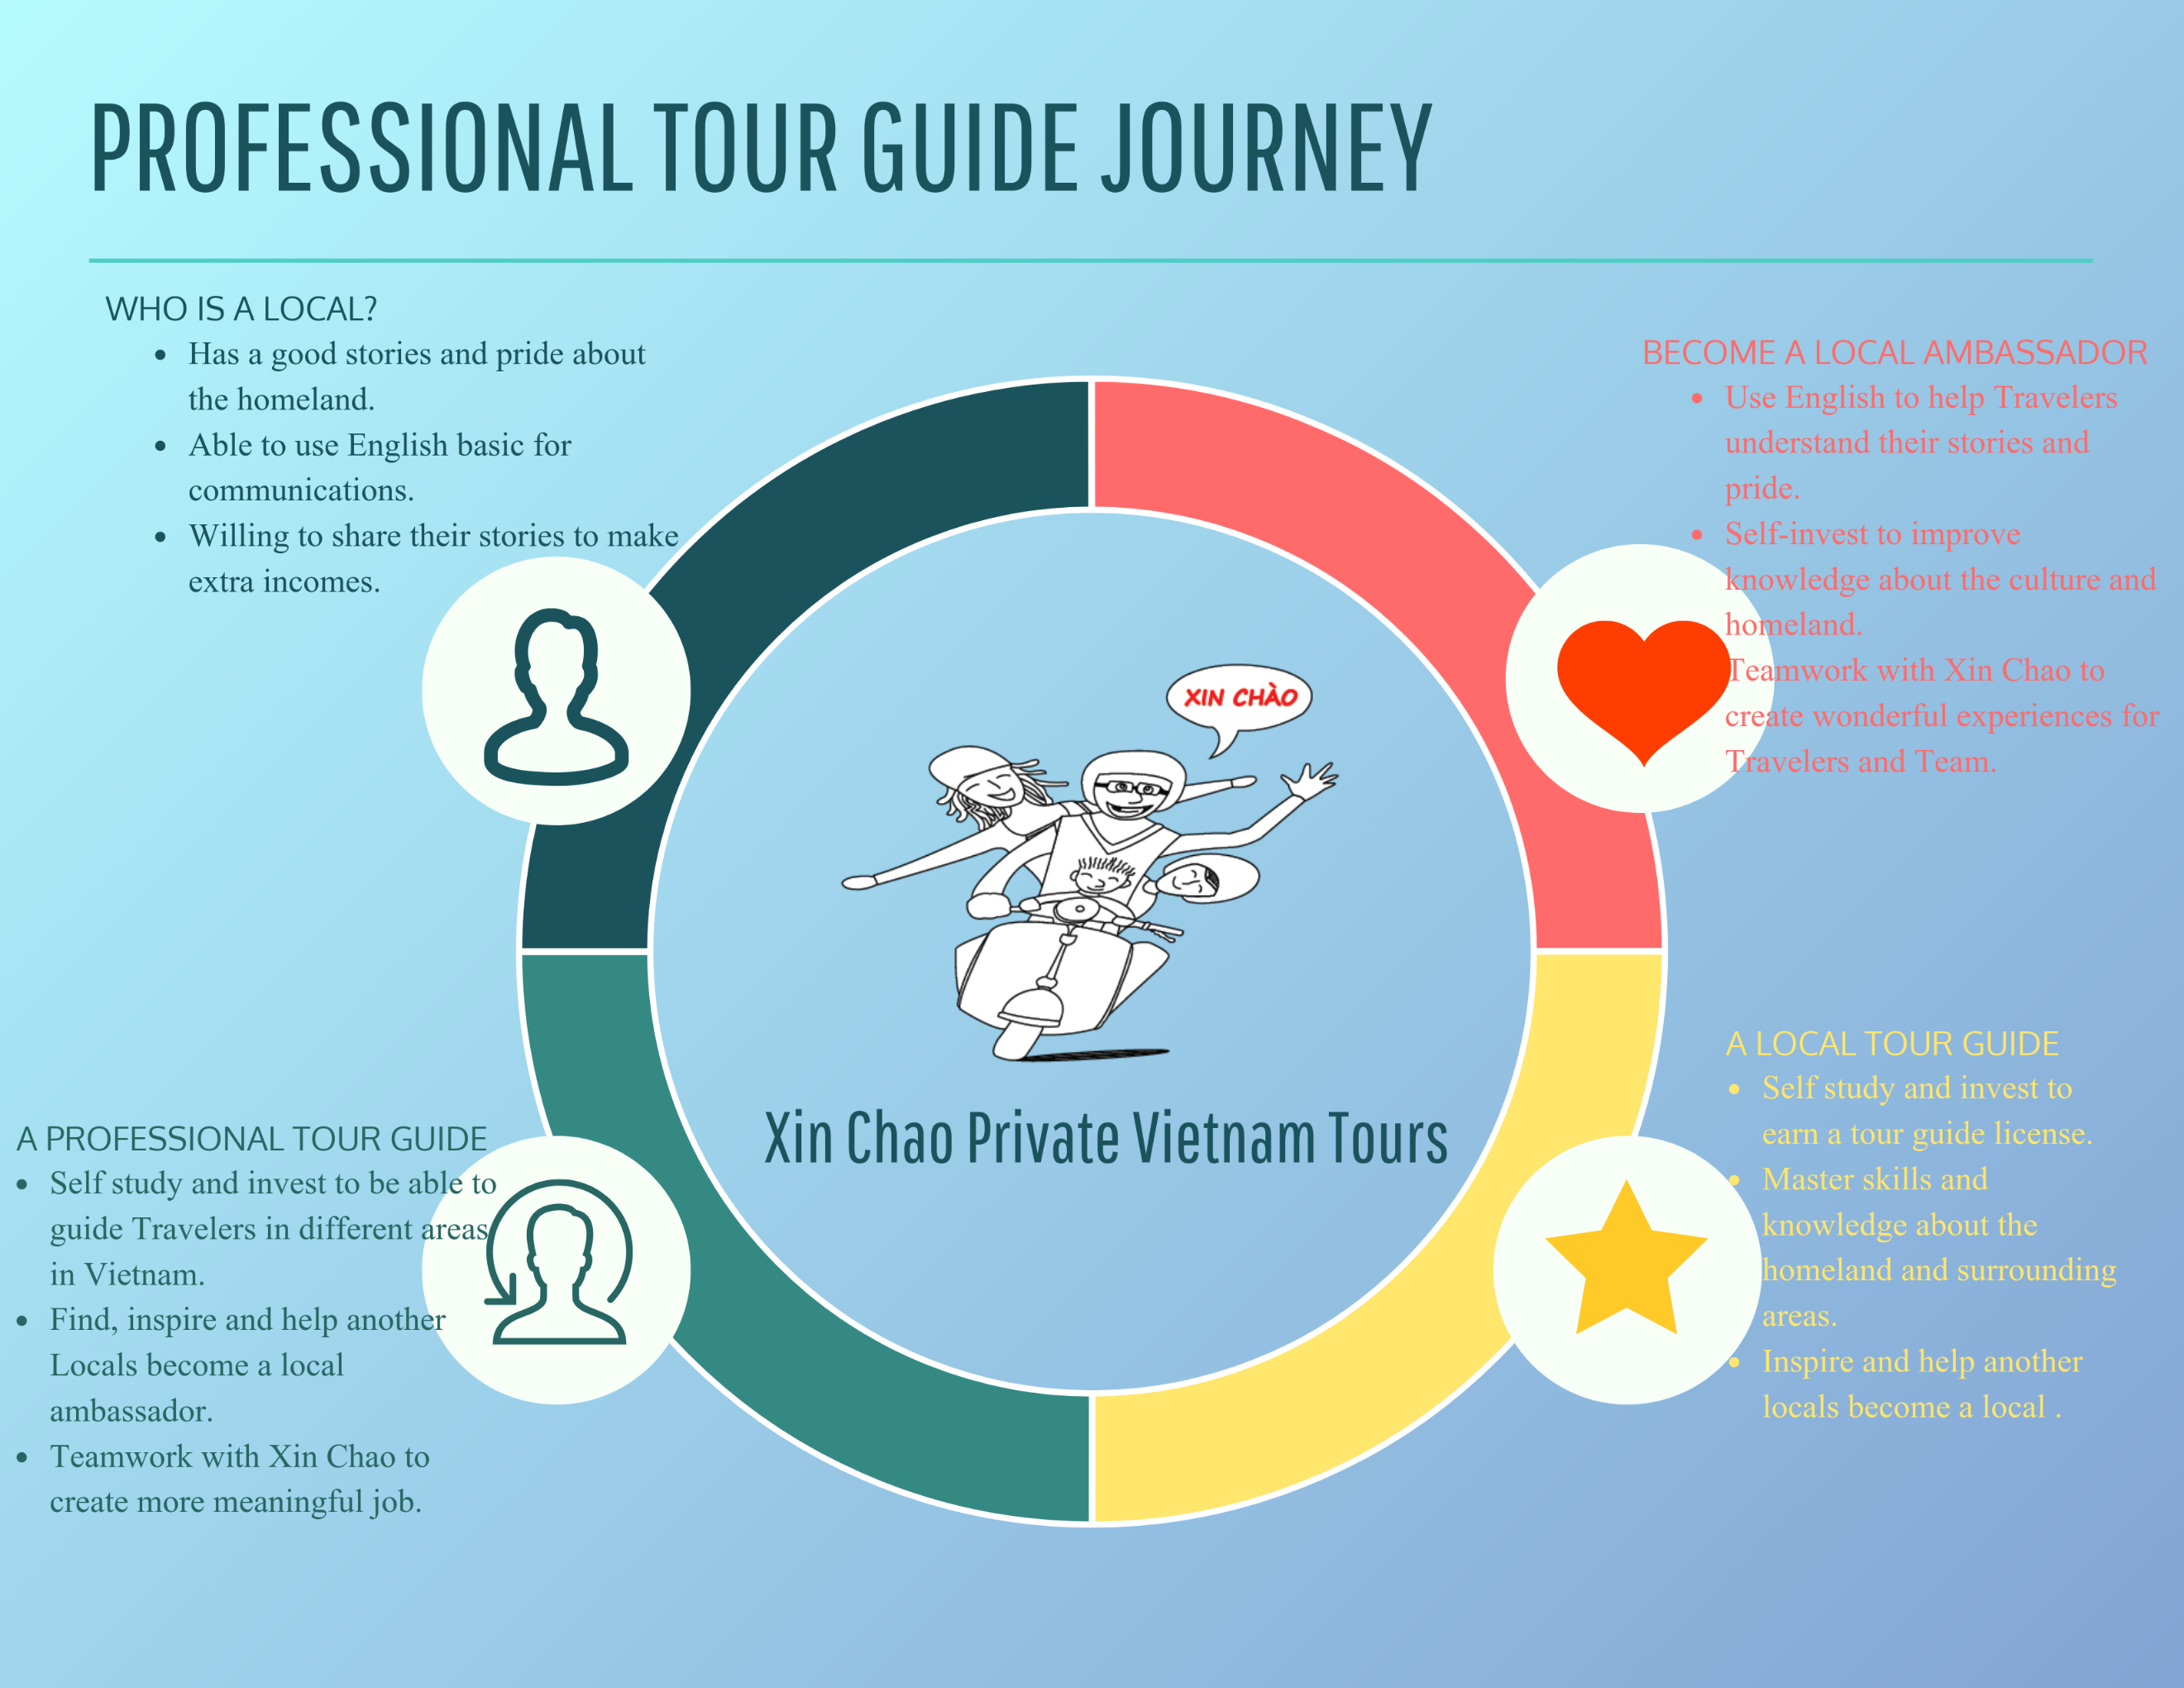 Professional Tour Guide Journey